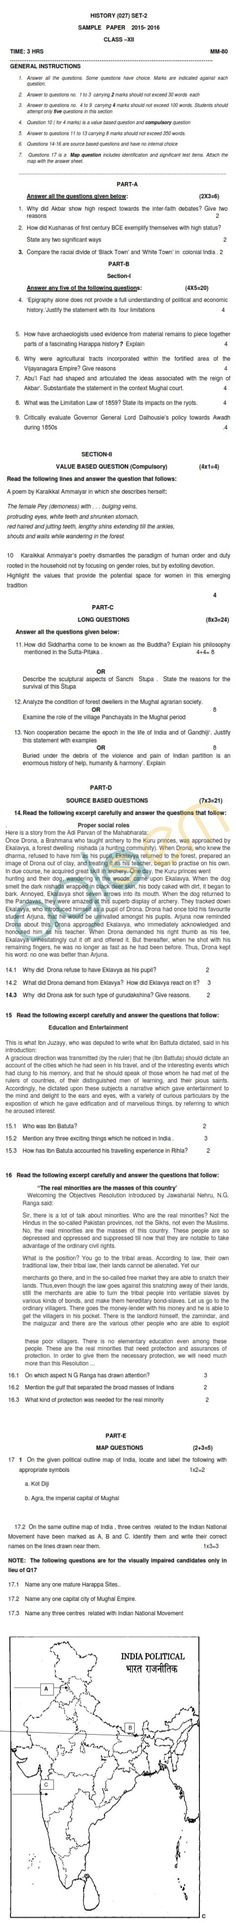 CBSE Sample Papers 2015 - 2016 for Class 12 – History Sample Paper, Schools, Student, Website, History, School, History Books, Historia